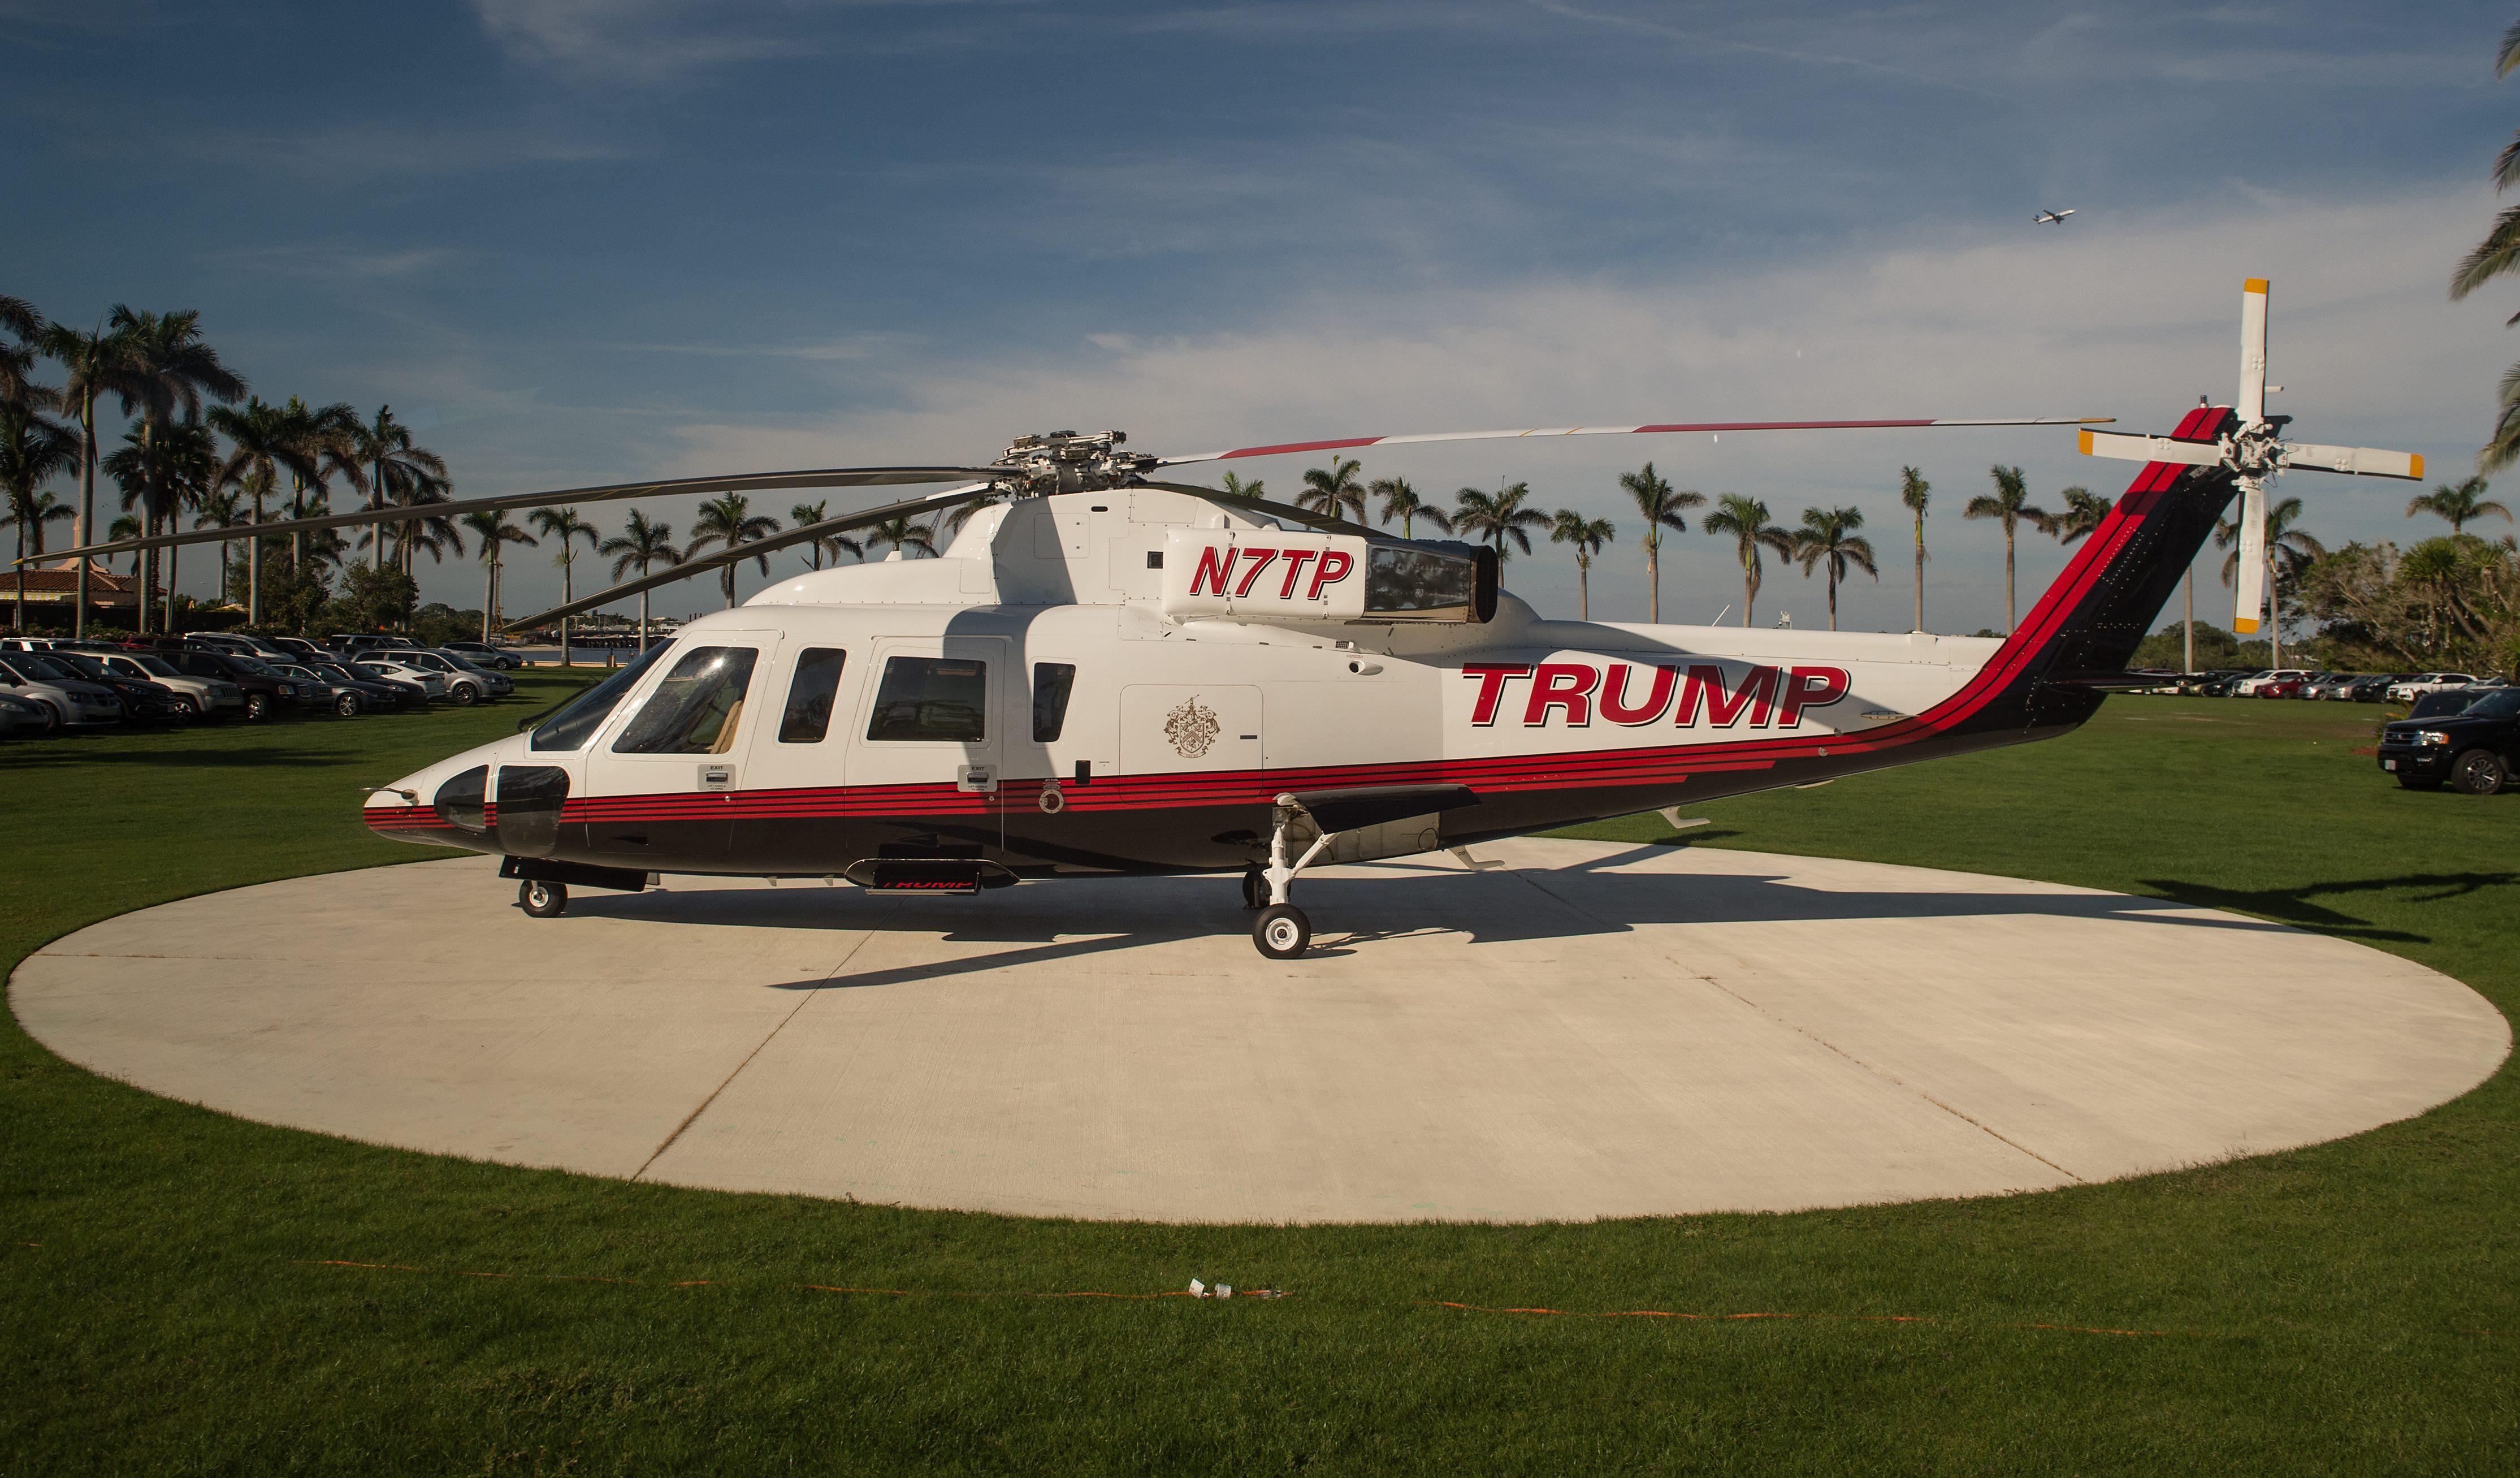 A helicopter sits on a landing pad at US President Donald Trump's Mar-a-Lago resort in Palm Beach, Florida, on December 24, 2017. / AFP PHOTO / NICHOLAS KAMM